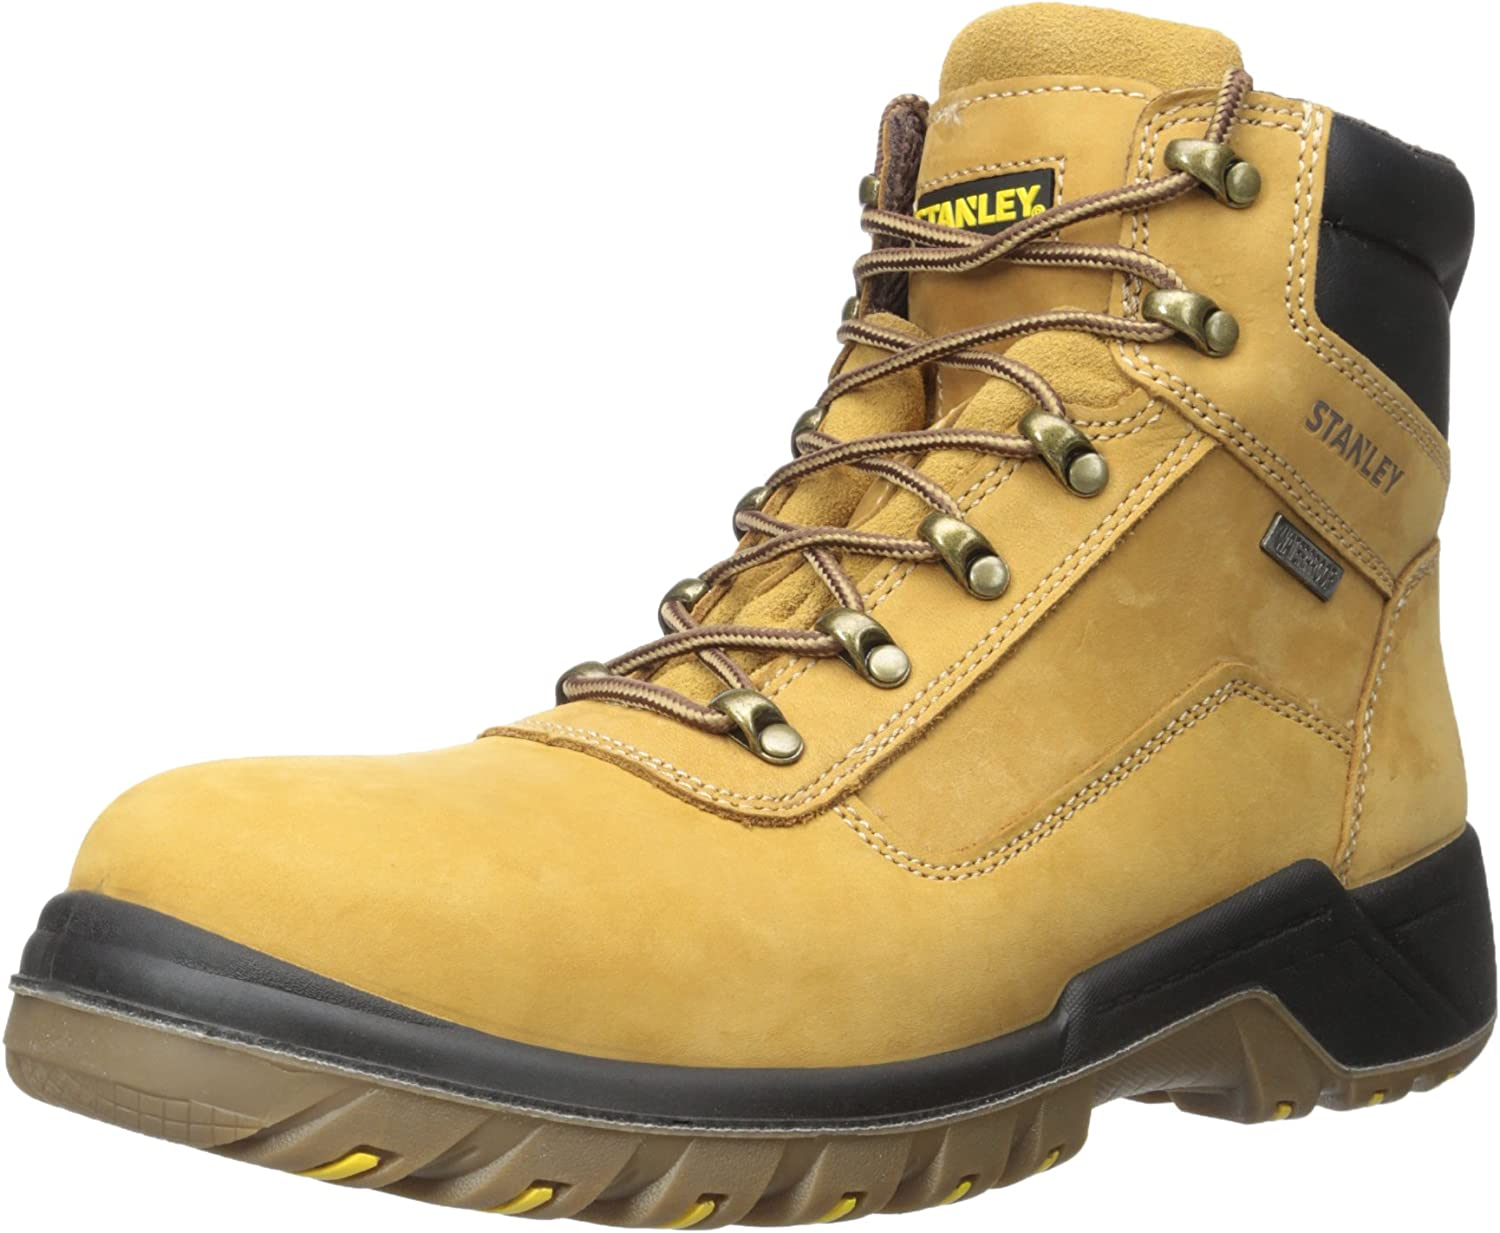 MENS BLUE STANLEY BEAM SAFETY WORK BOOTS FOOTWEAR STRONG TOUGH SIZE 11 NEW BOXED